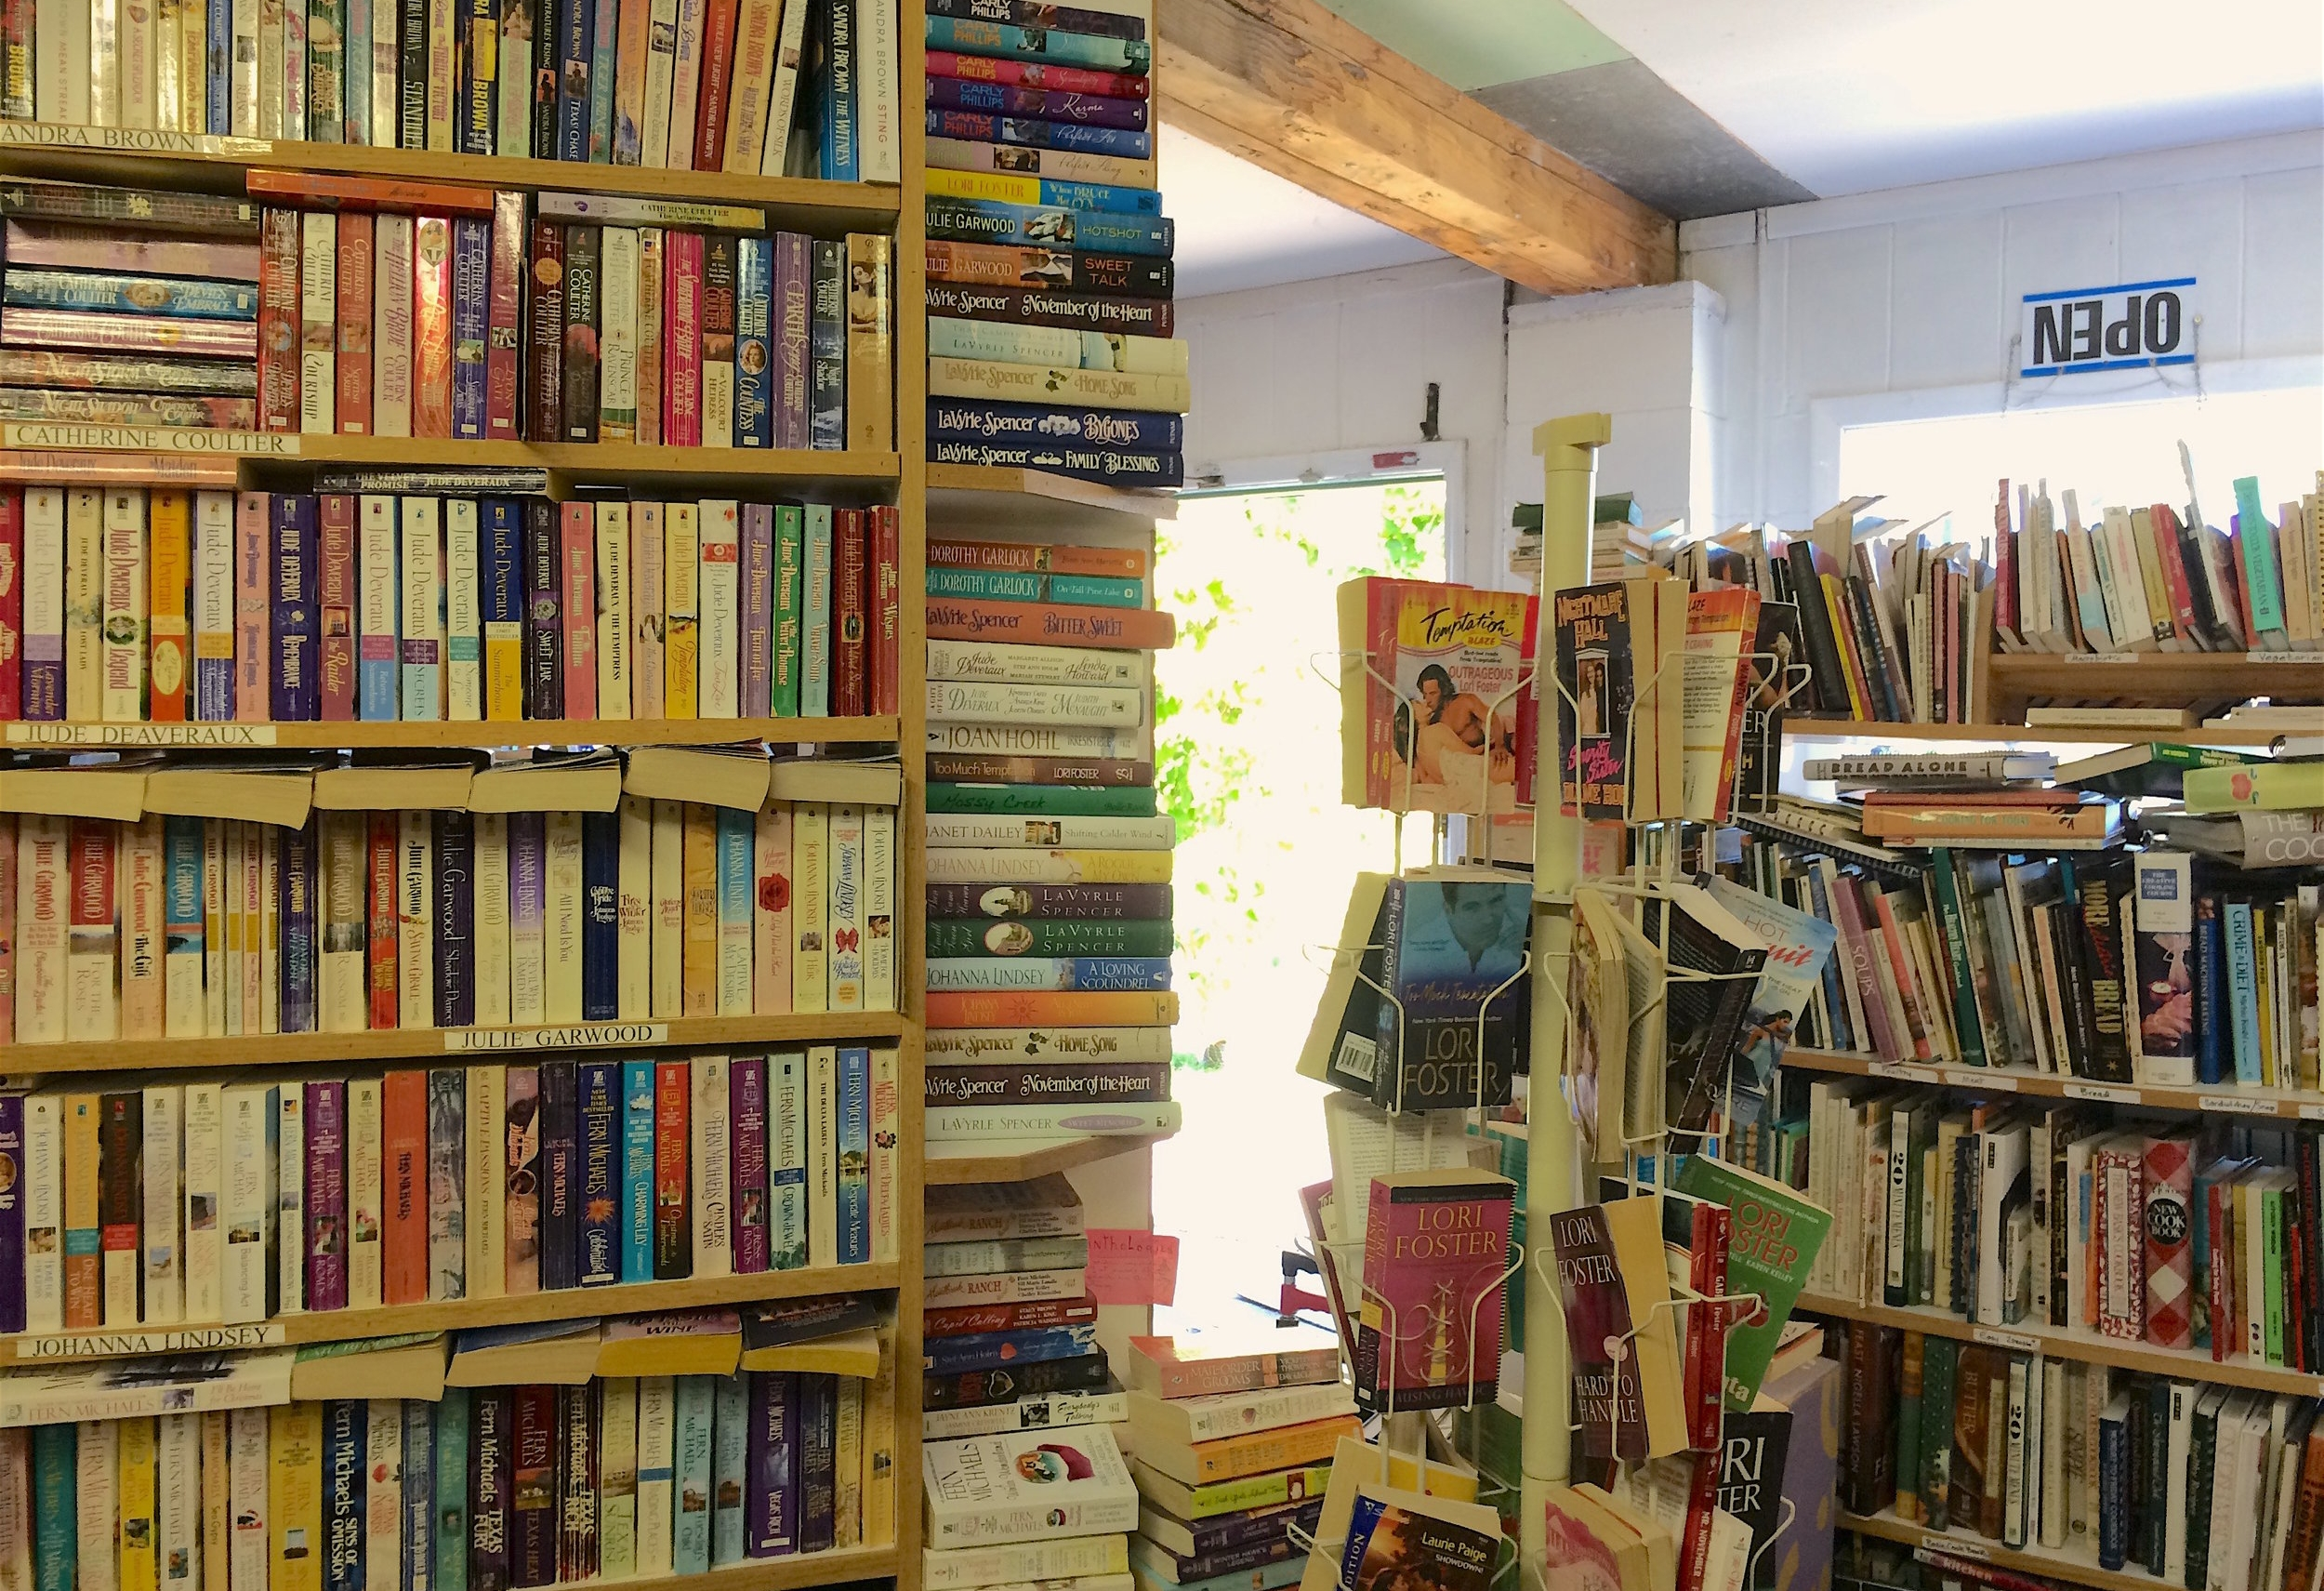 Shelves, stacks, racks, and piles at Park Avenue Books.